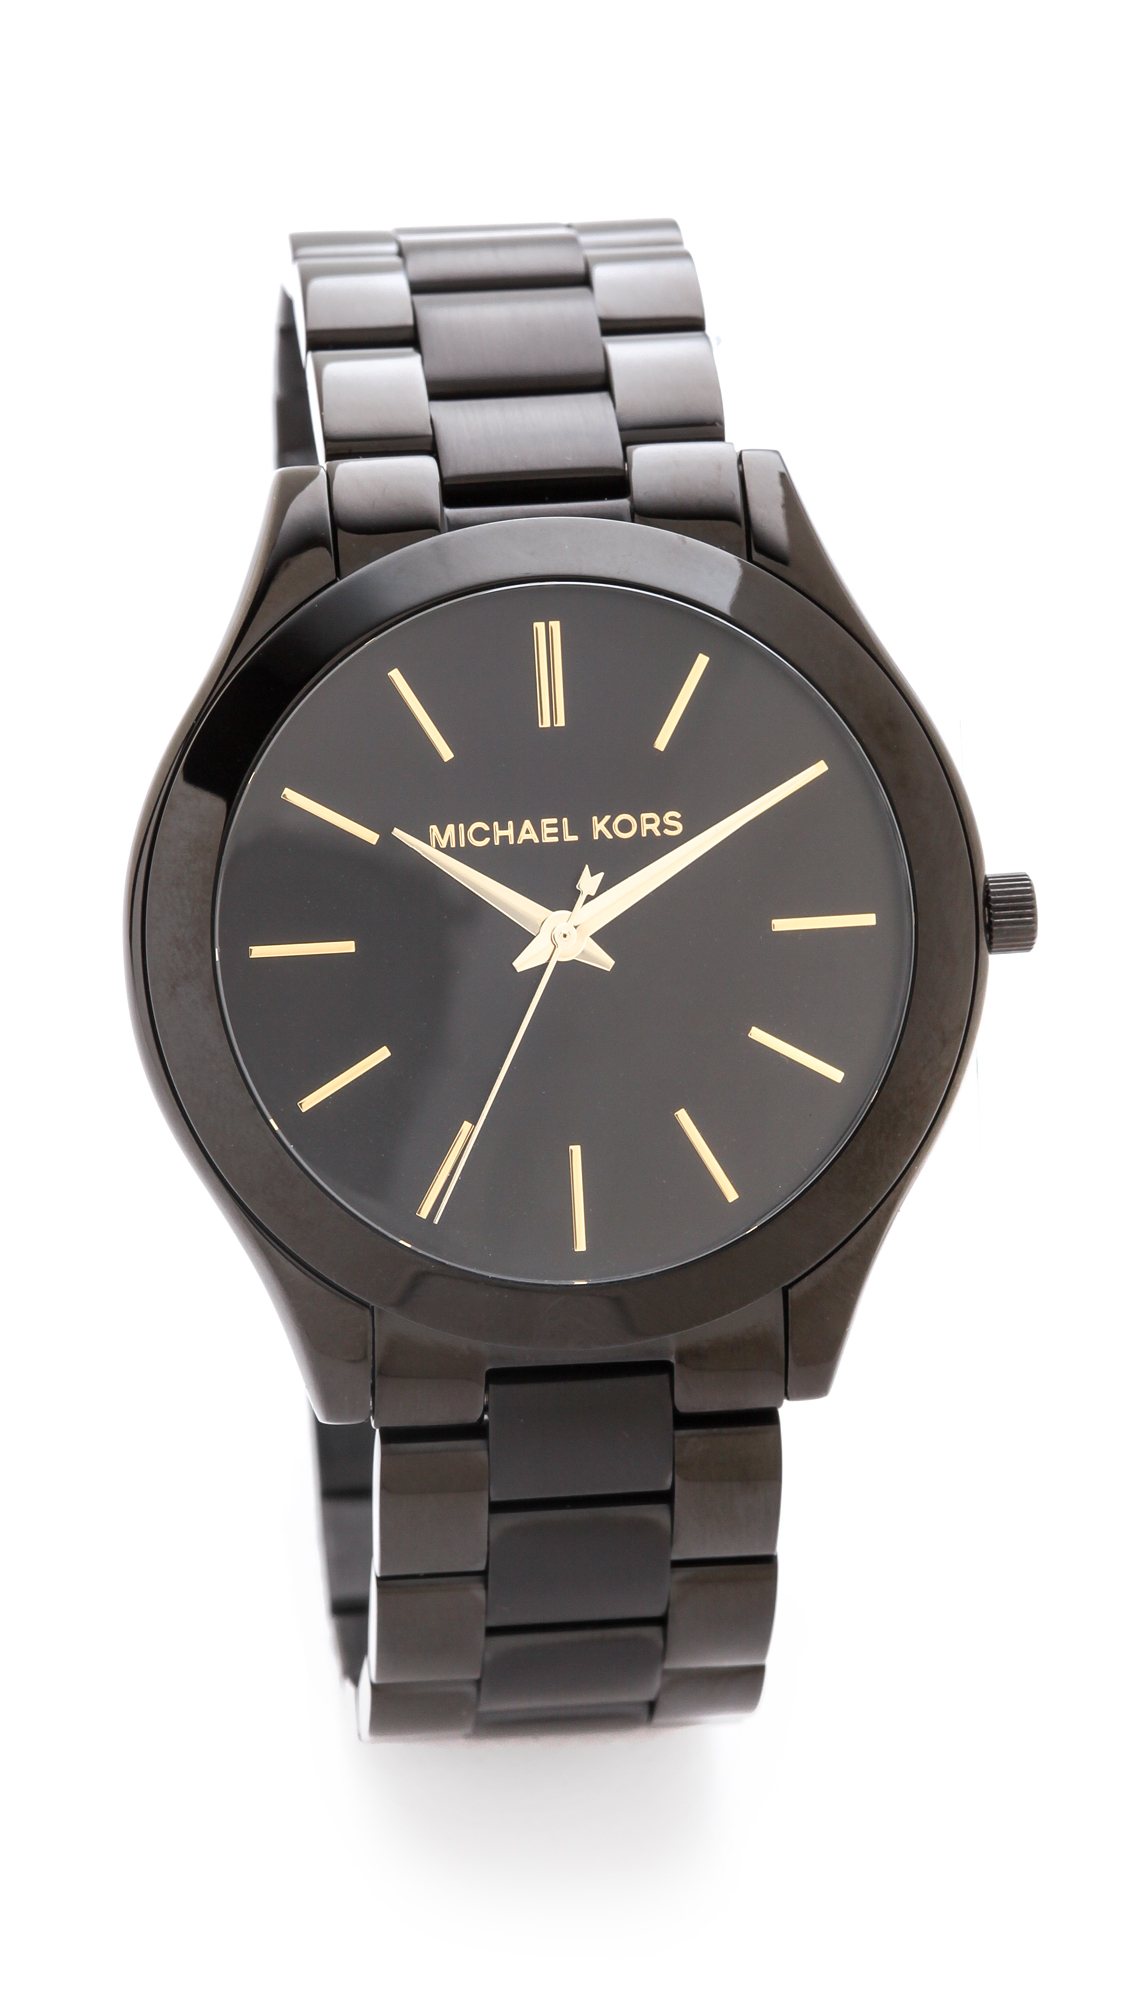 Michael kors slim runway watch in black lyst for Watches michael kors